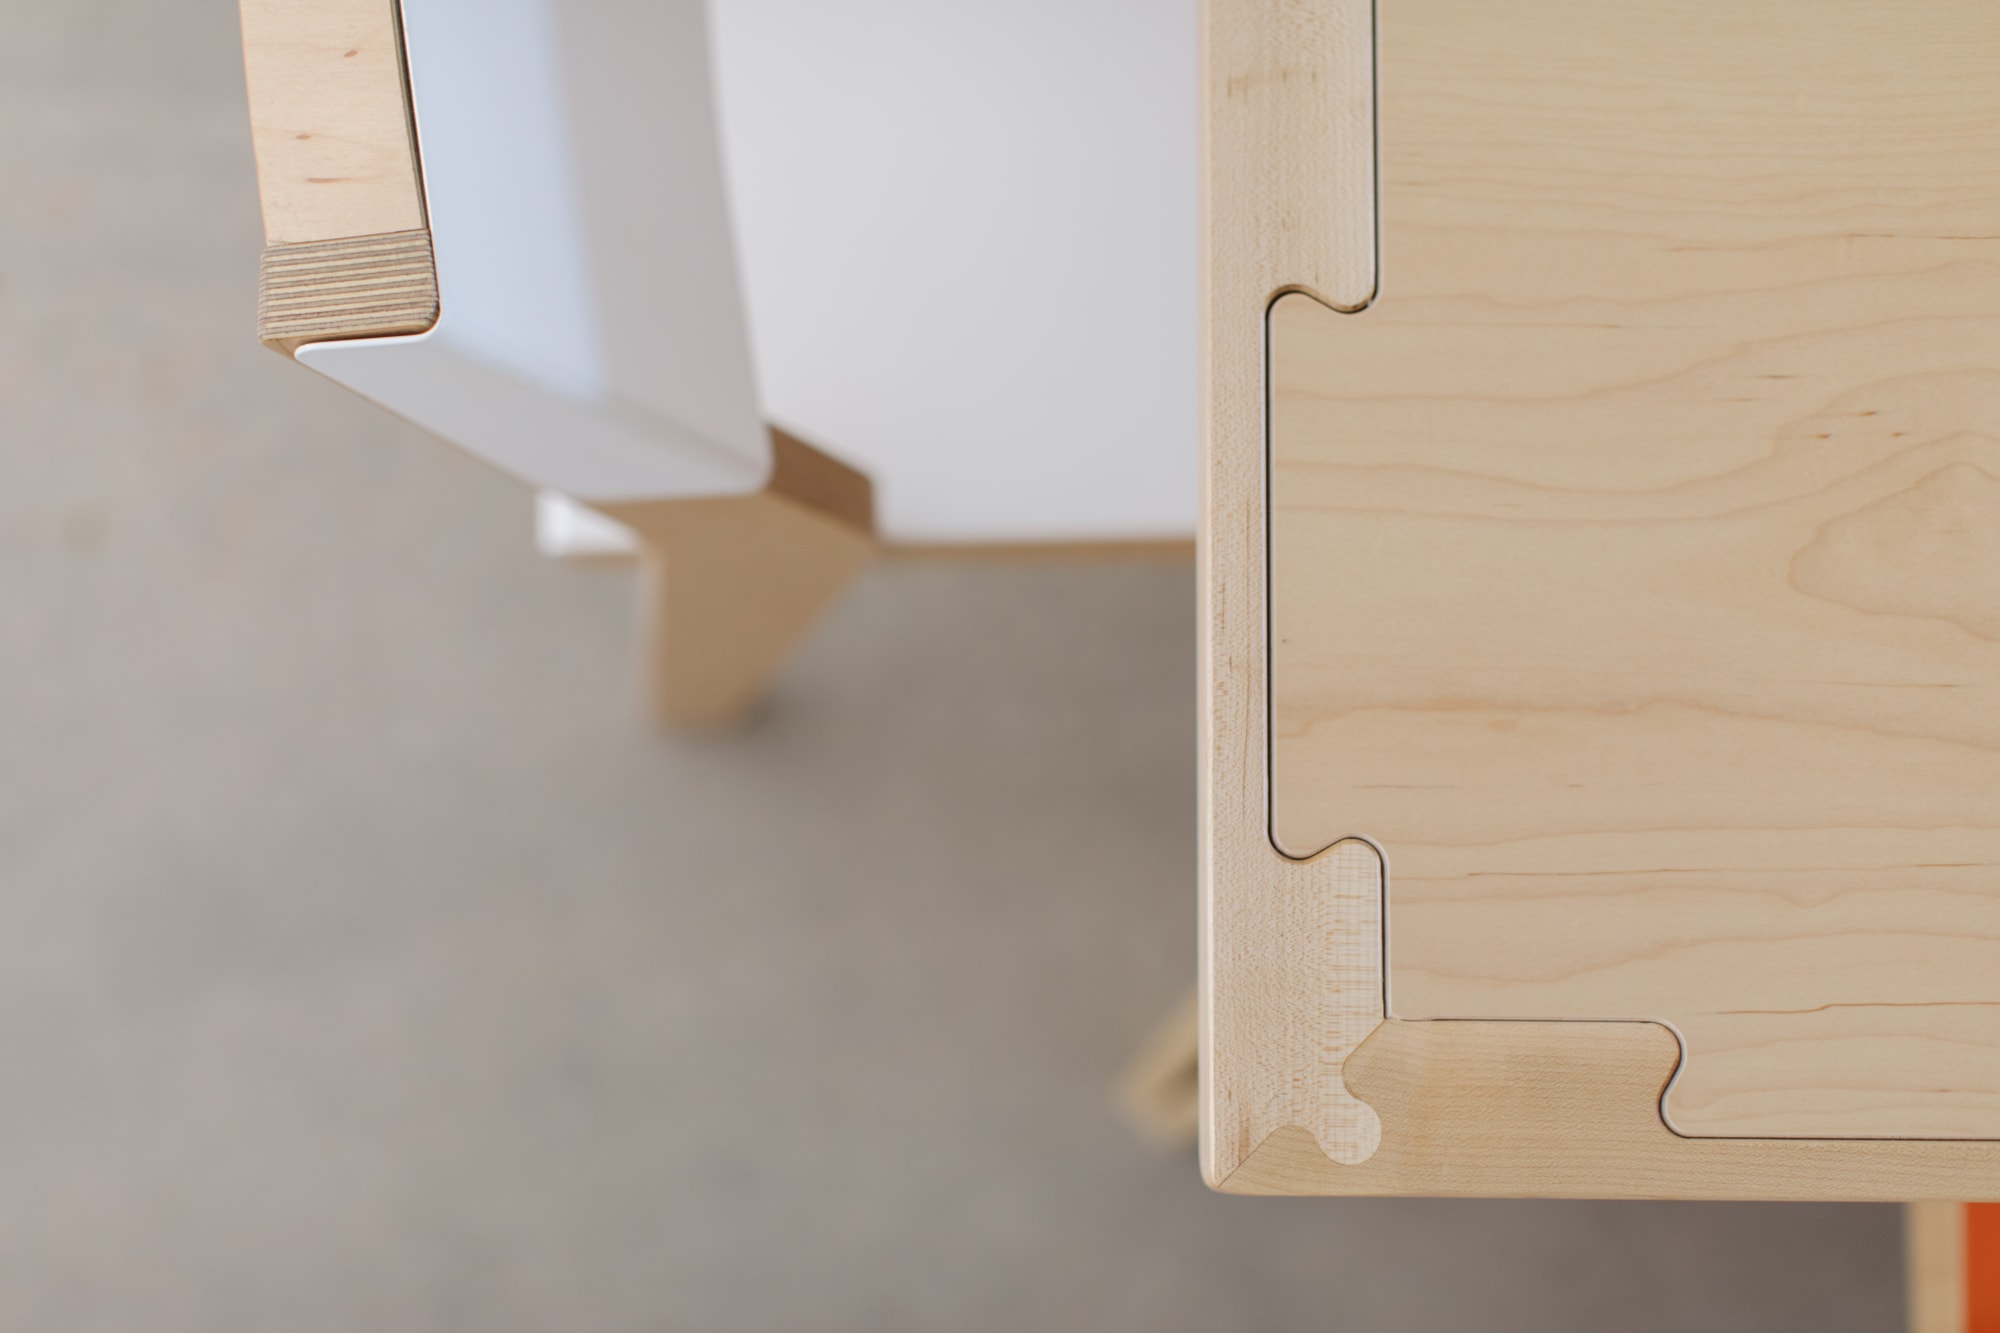 Tables by Housefish seen at Private Residence | Denver, CO, Denver - Tension Table